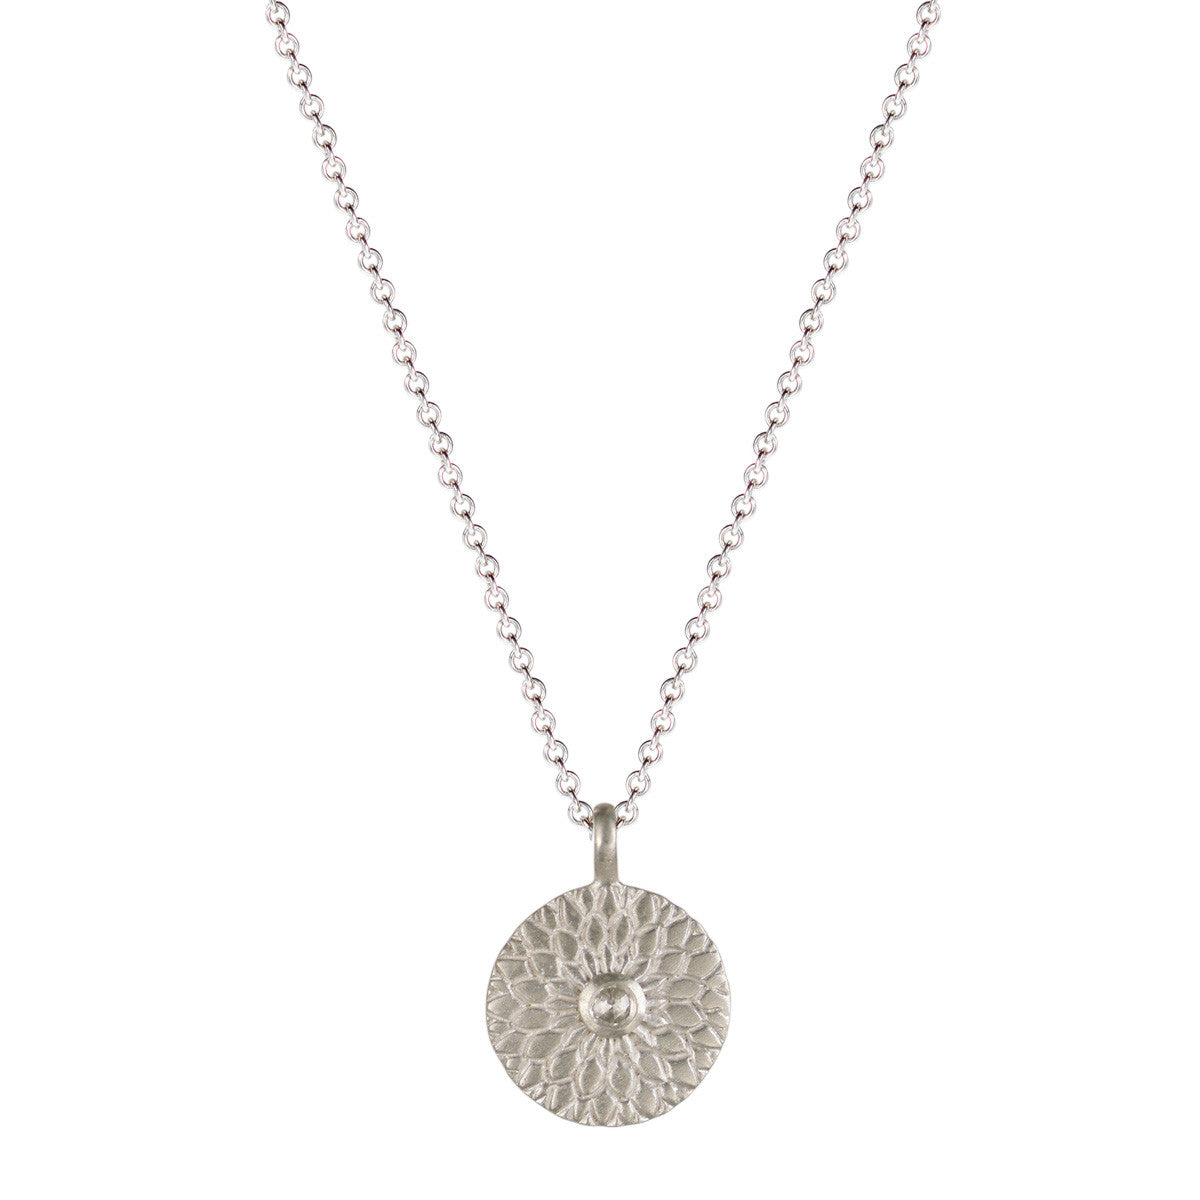 do mandala balance product catalog necklace redford s robert view sundance